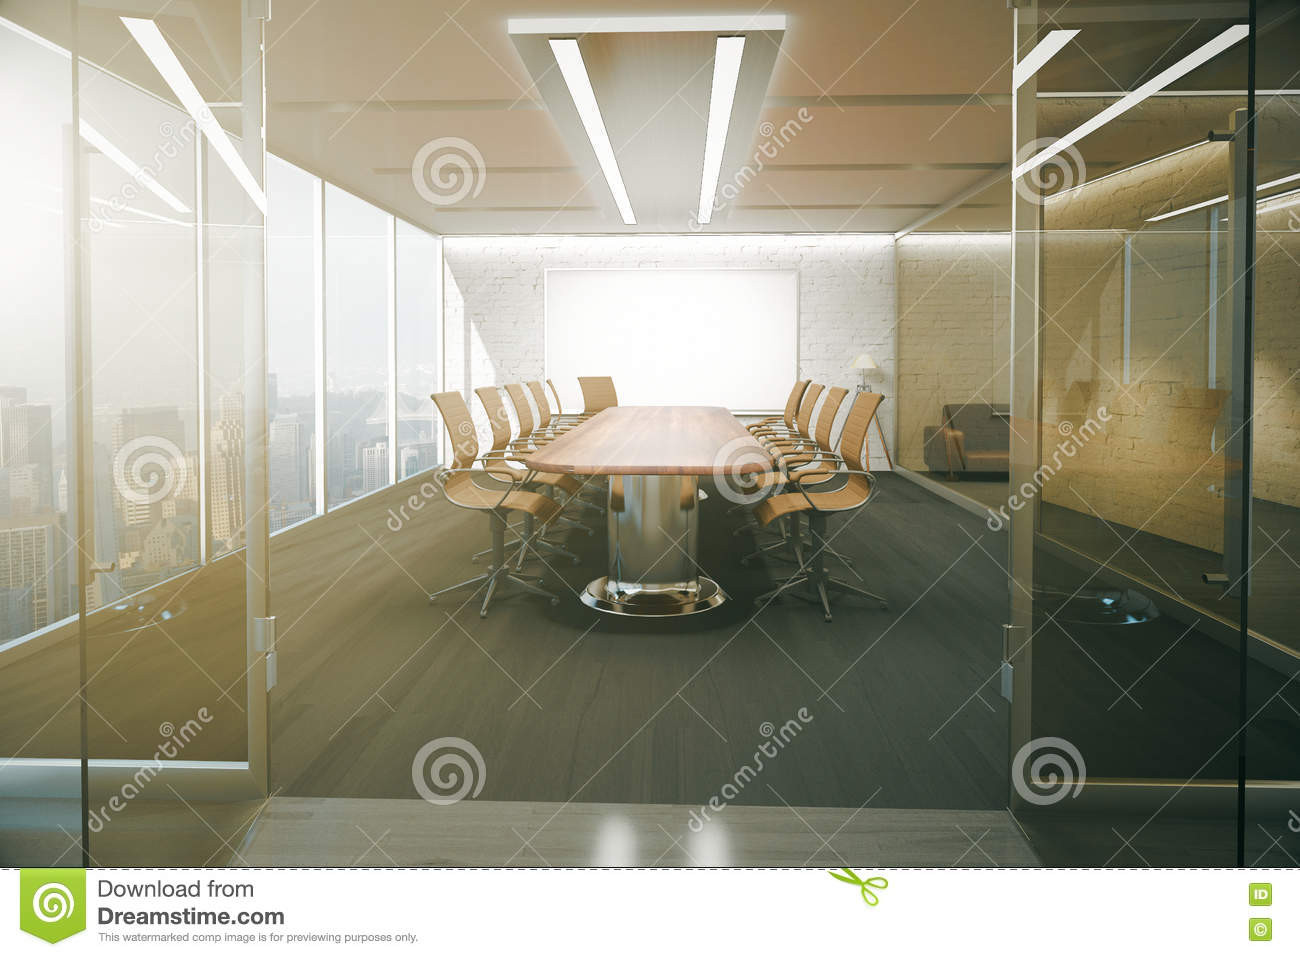 Conference room stock illustration illustration of Opening glass walls